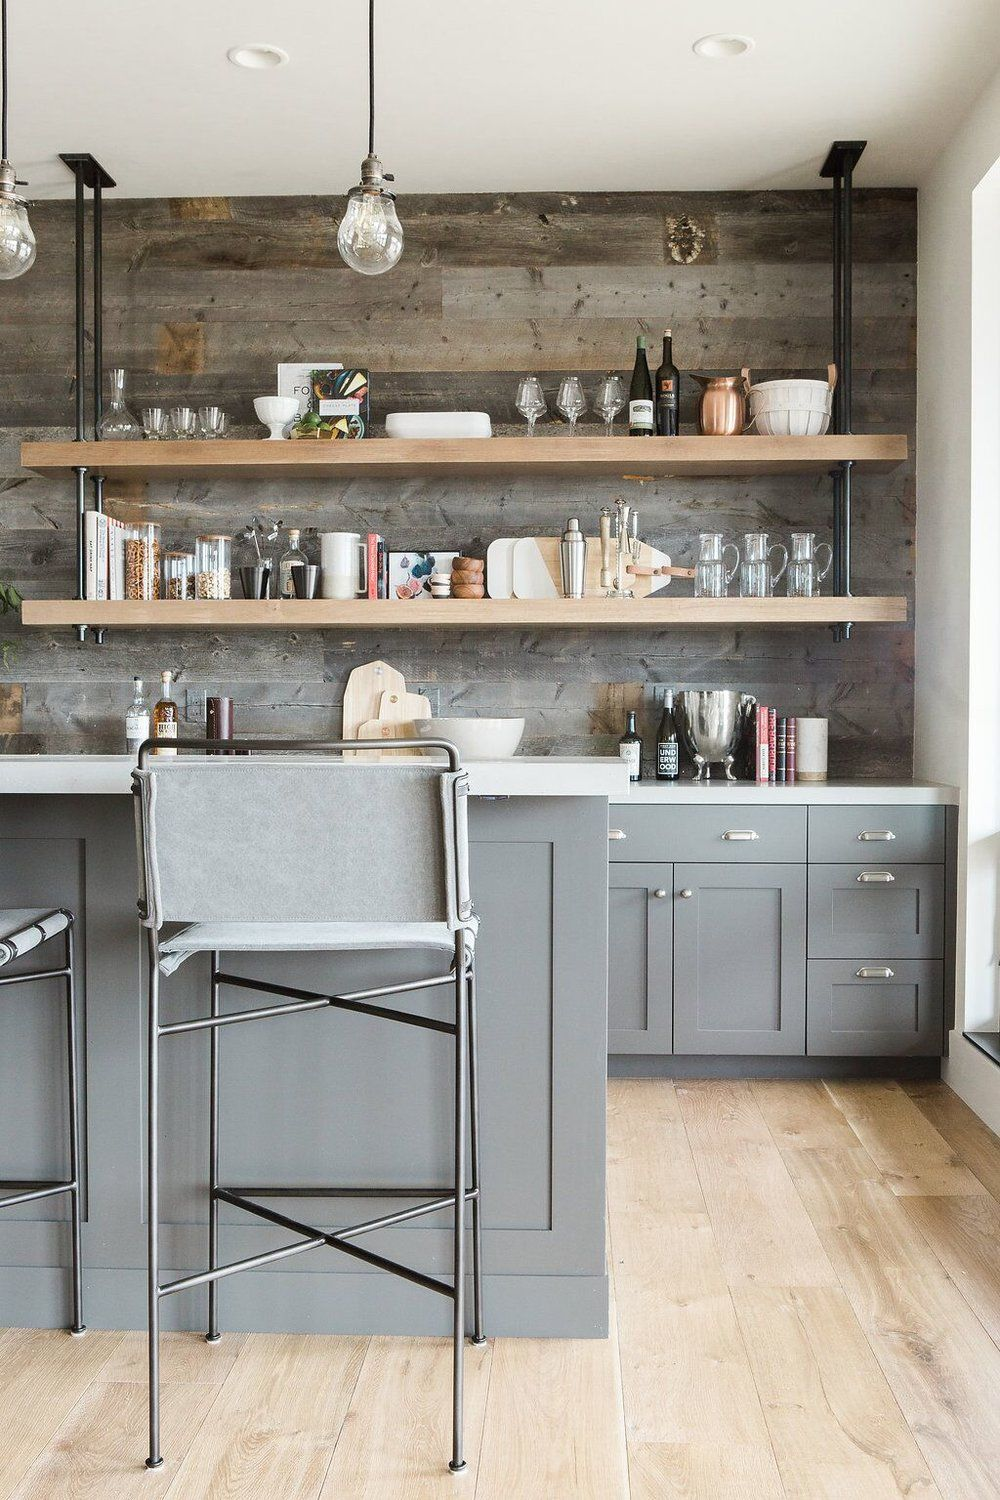 trends we're loving: open pipe shelving | kitchens | bars